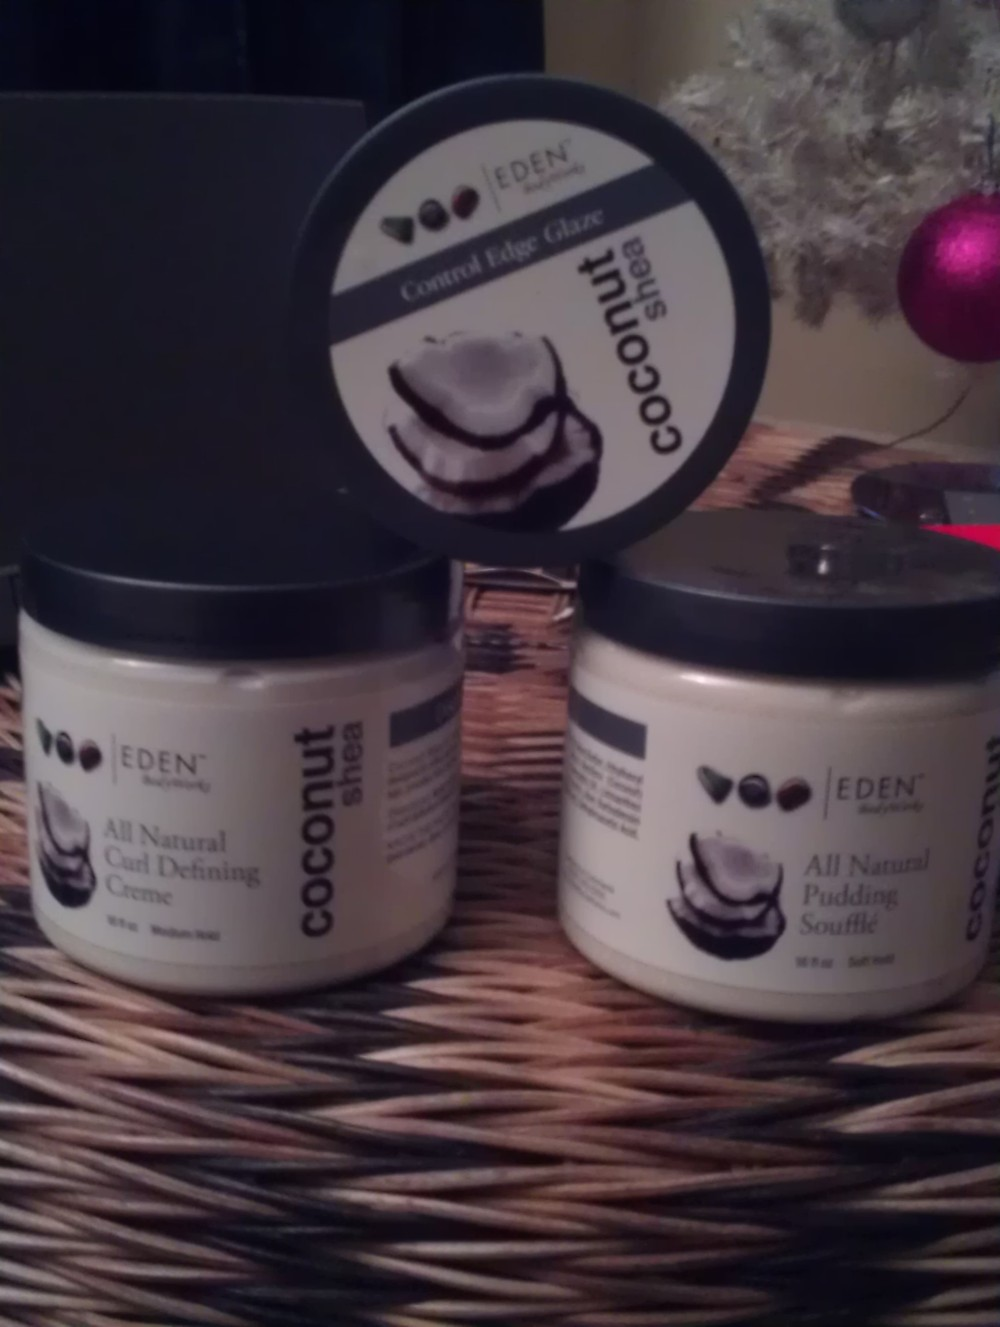 Eden Body Works. Will I love or loathe this product line? We'll soon have find out.